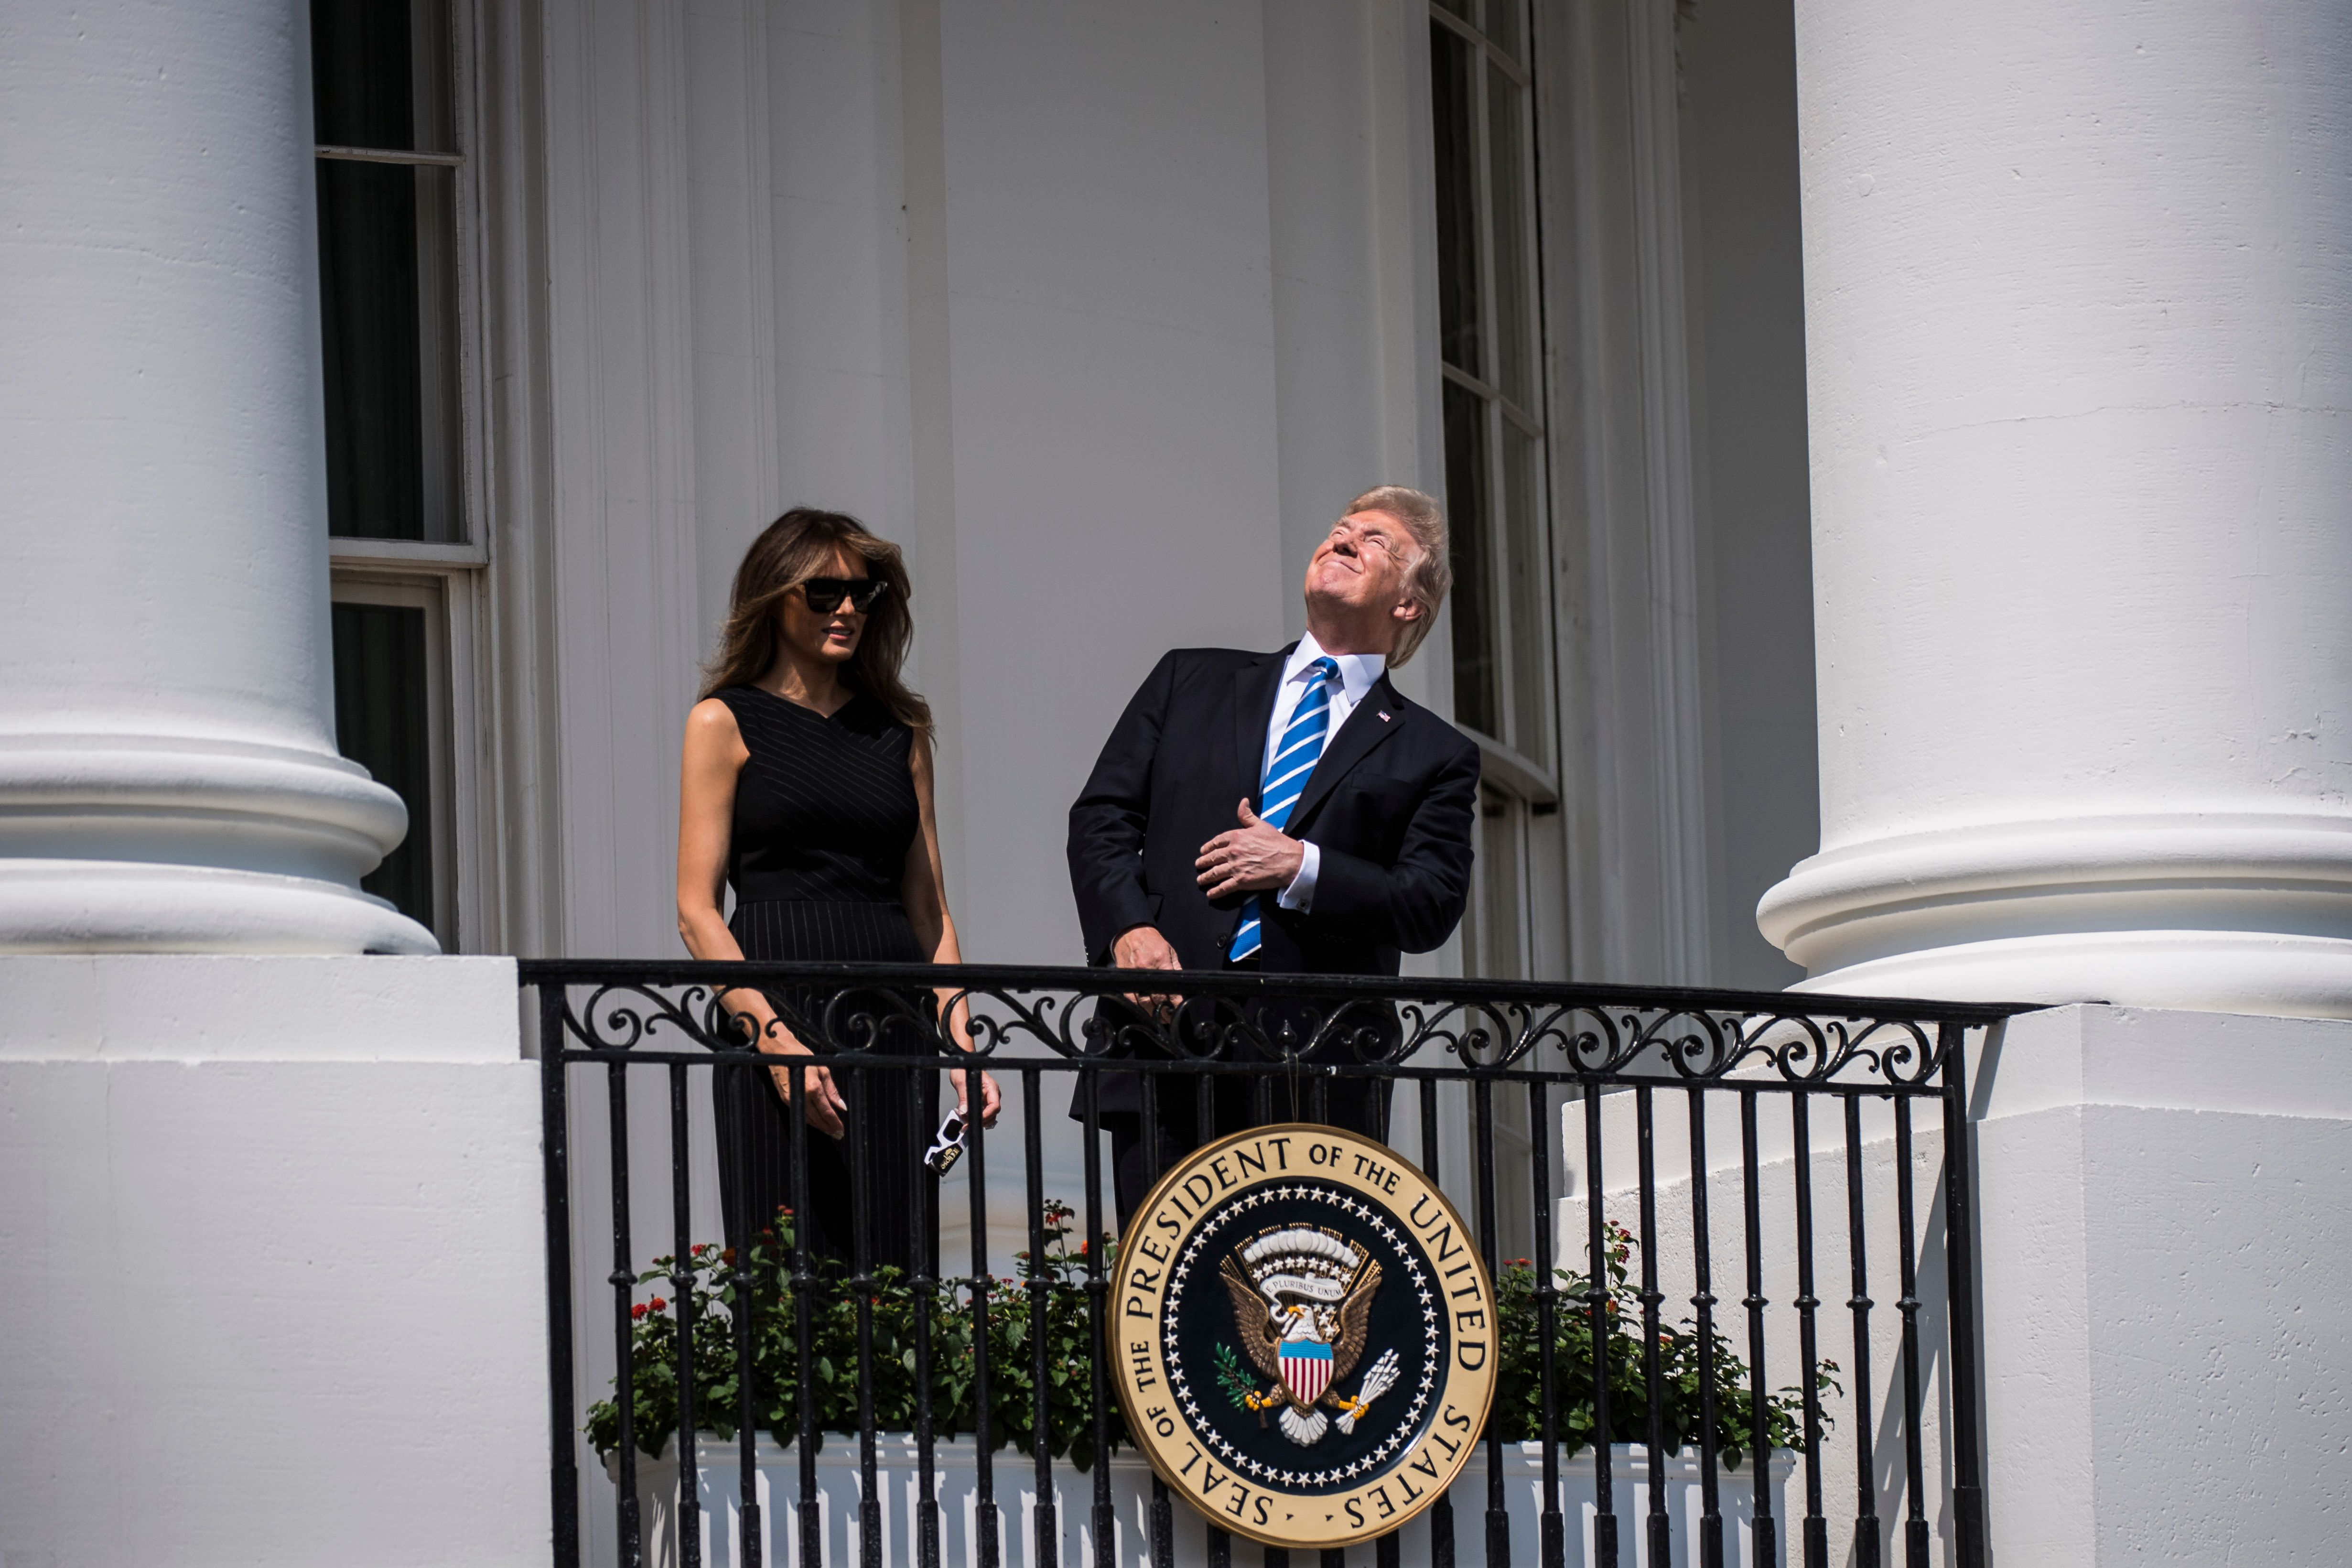 WASHINGTON, DC - AUGUST 21: President Donald Trump looks up toward the Solar Eclipse without glasses from a balcony at the White House in Washington, DC on Monday, Aug 21, 2017. (Photo by Jabin Botsford/The Washington Post via Getty Images)